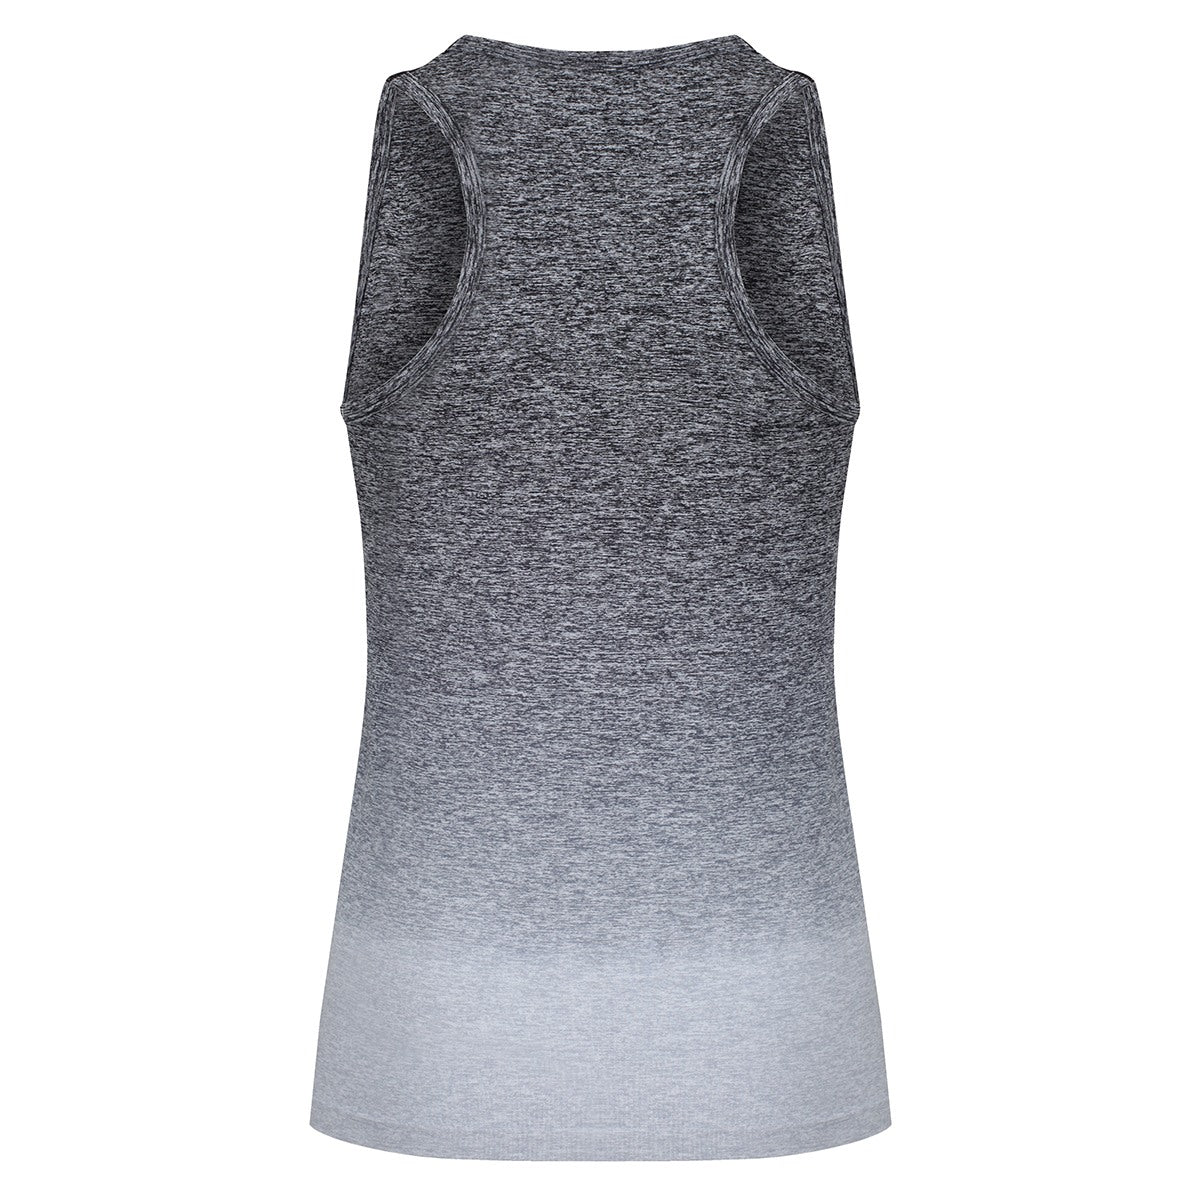 Tikiboo Grey Ombré Vest Top - Back Product View